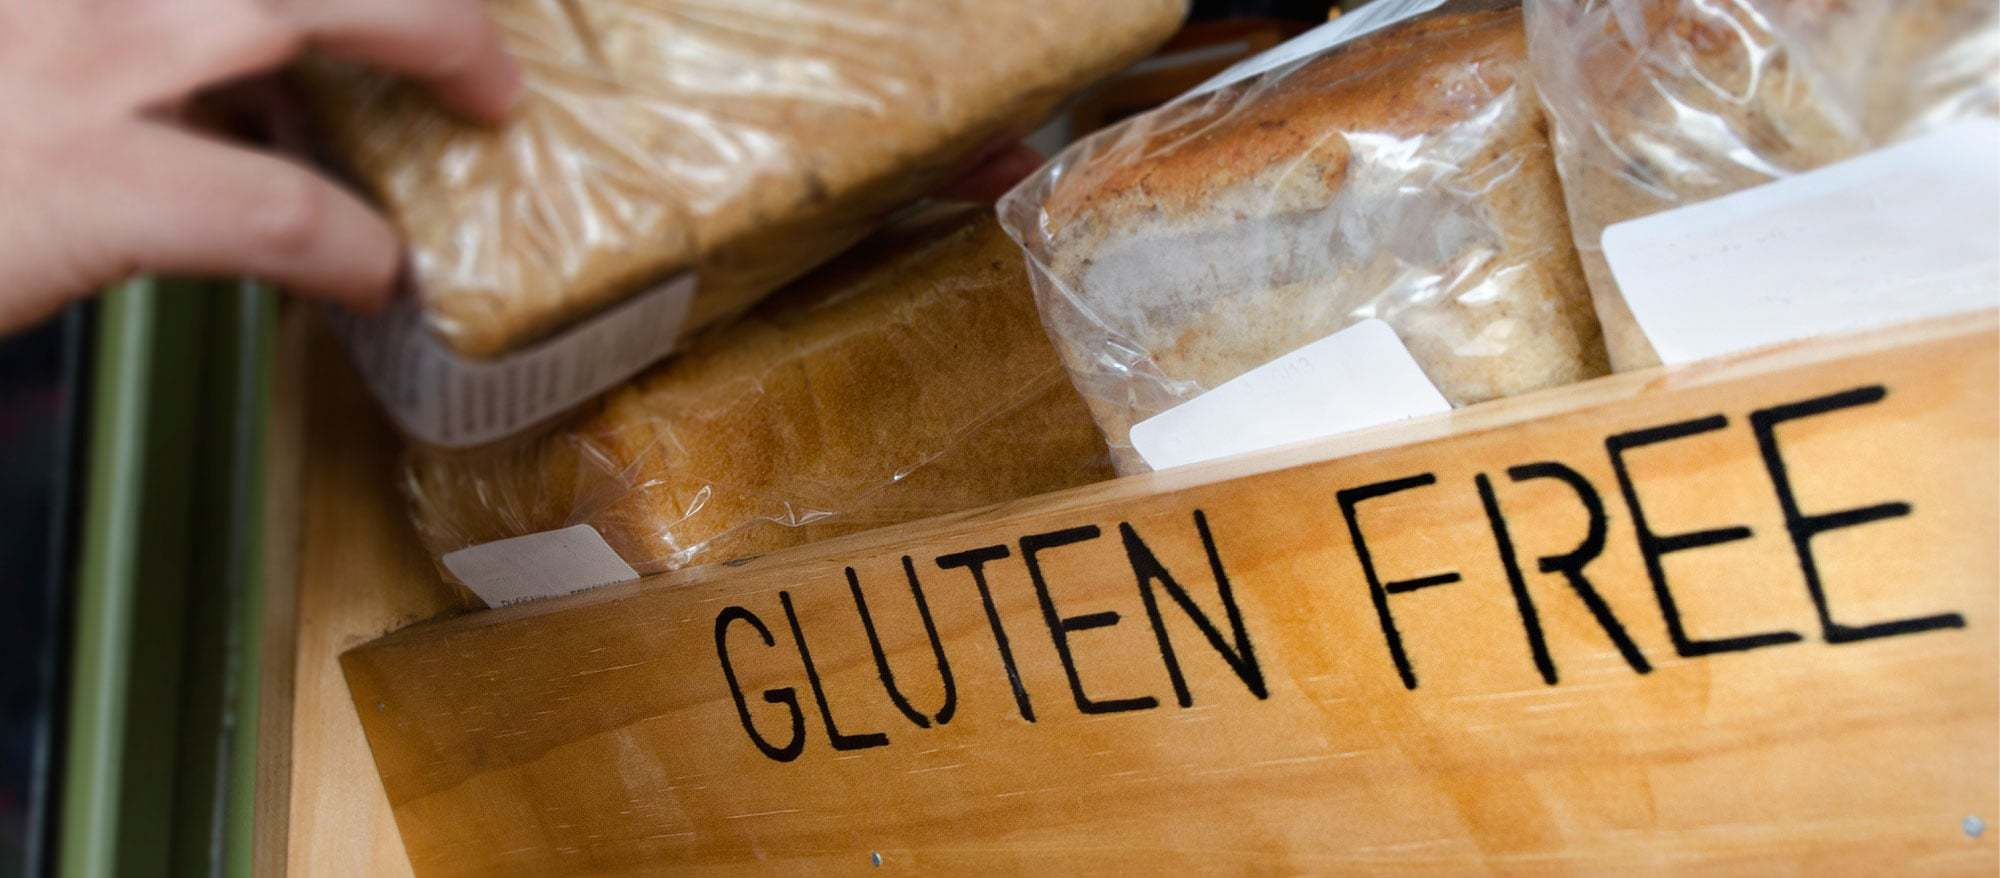 Gluten free food is now available in most supermarkets